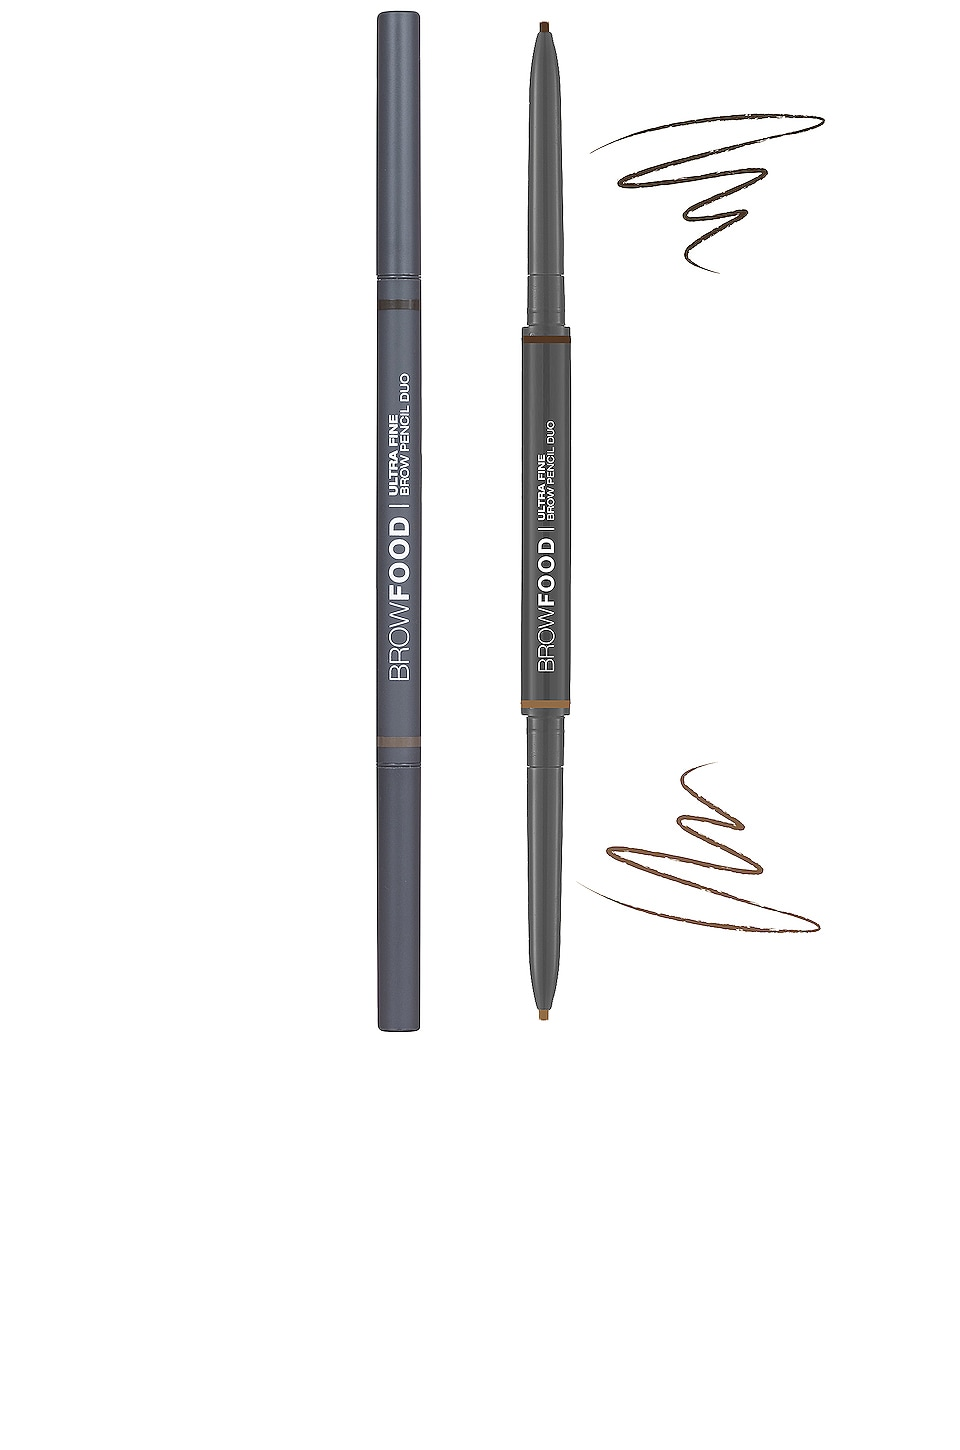 Lashfood Browfood Ultra Fine Brow Pencil Duo in Dark Brunette